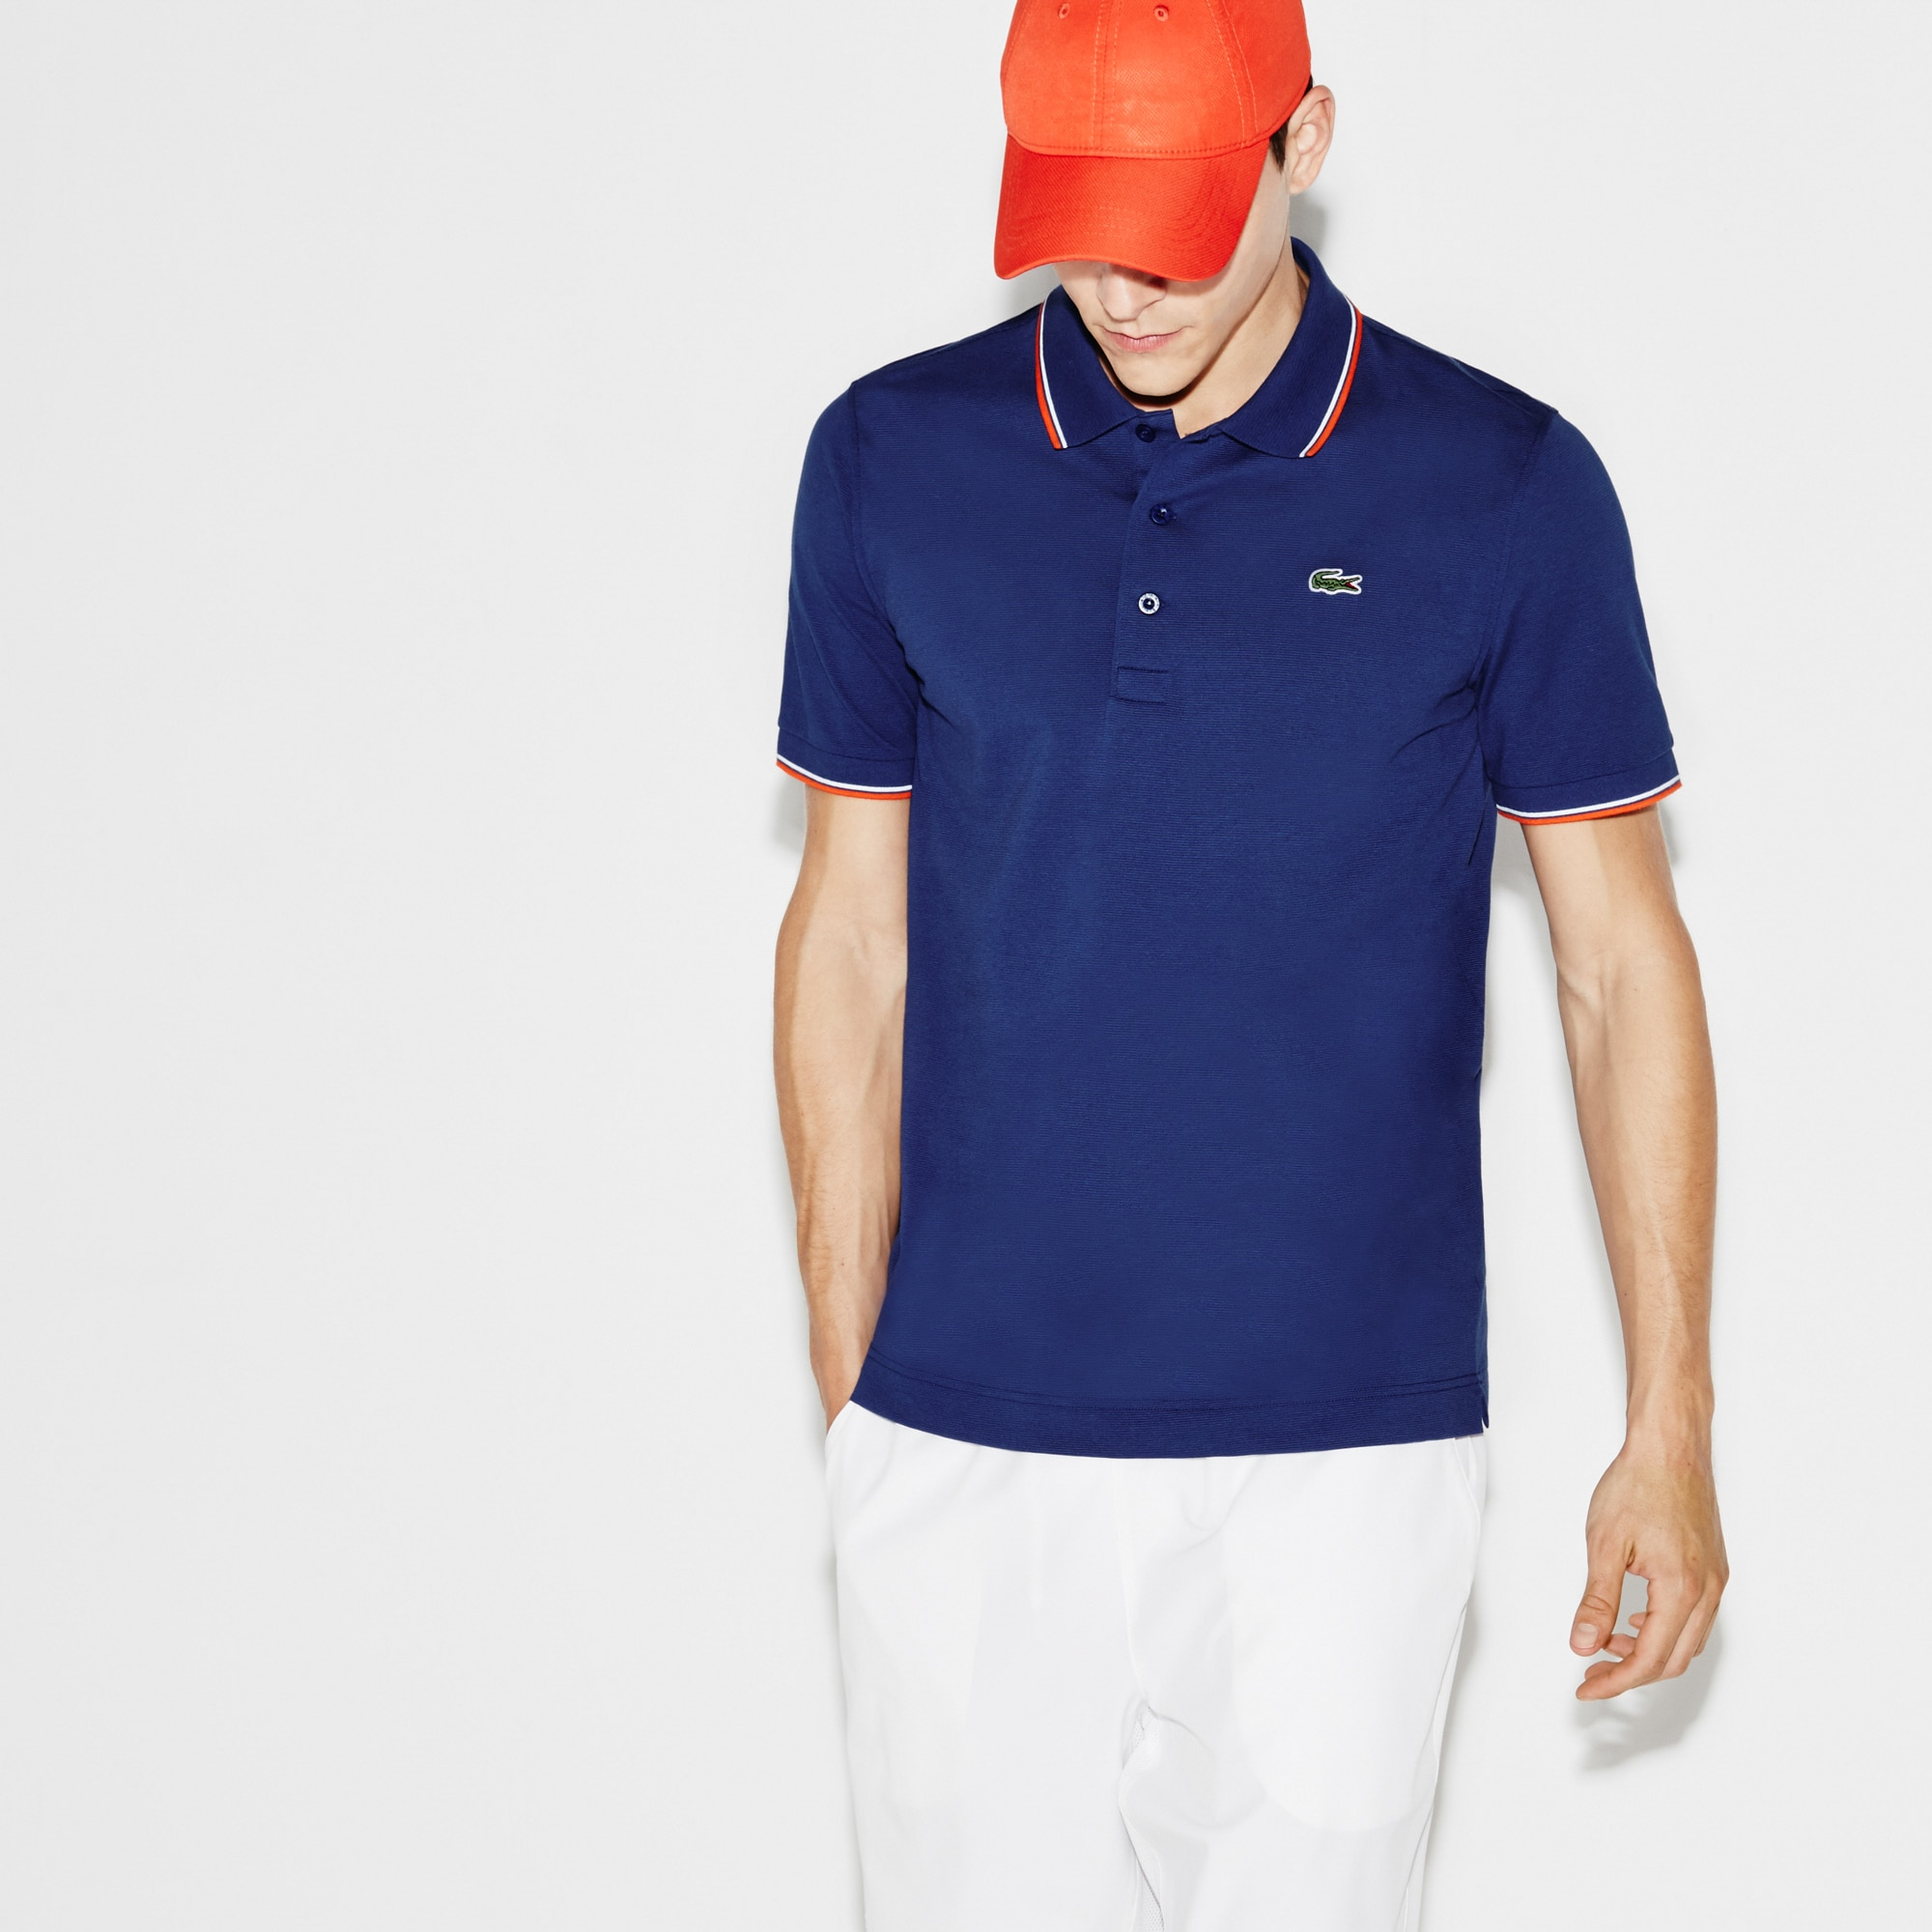 Men's Lacoste SPORT Ultra-light Knits Polo With Piping